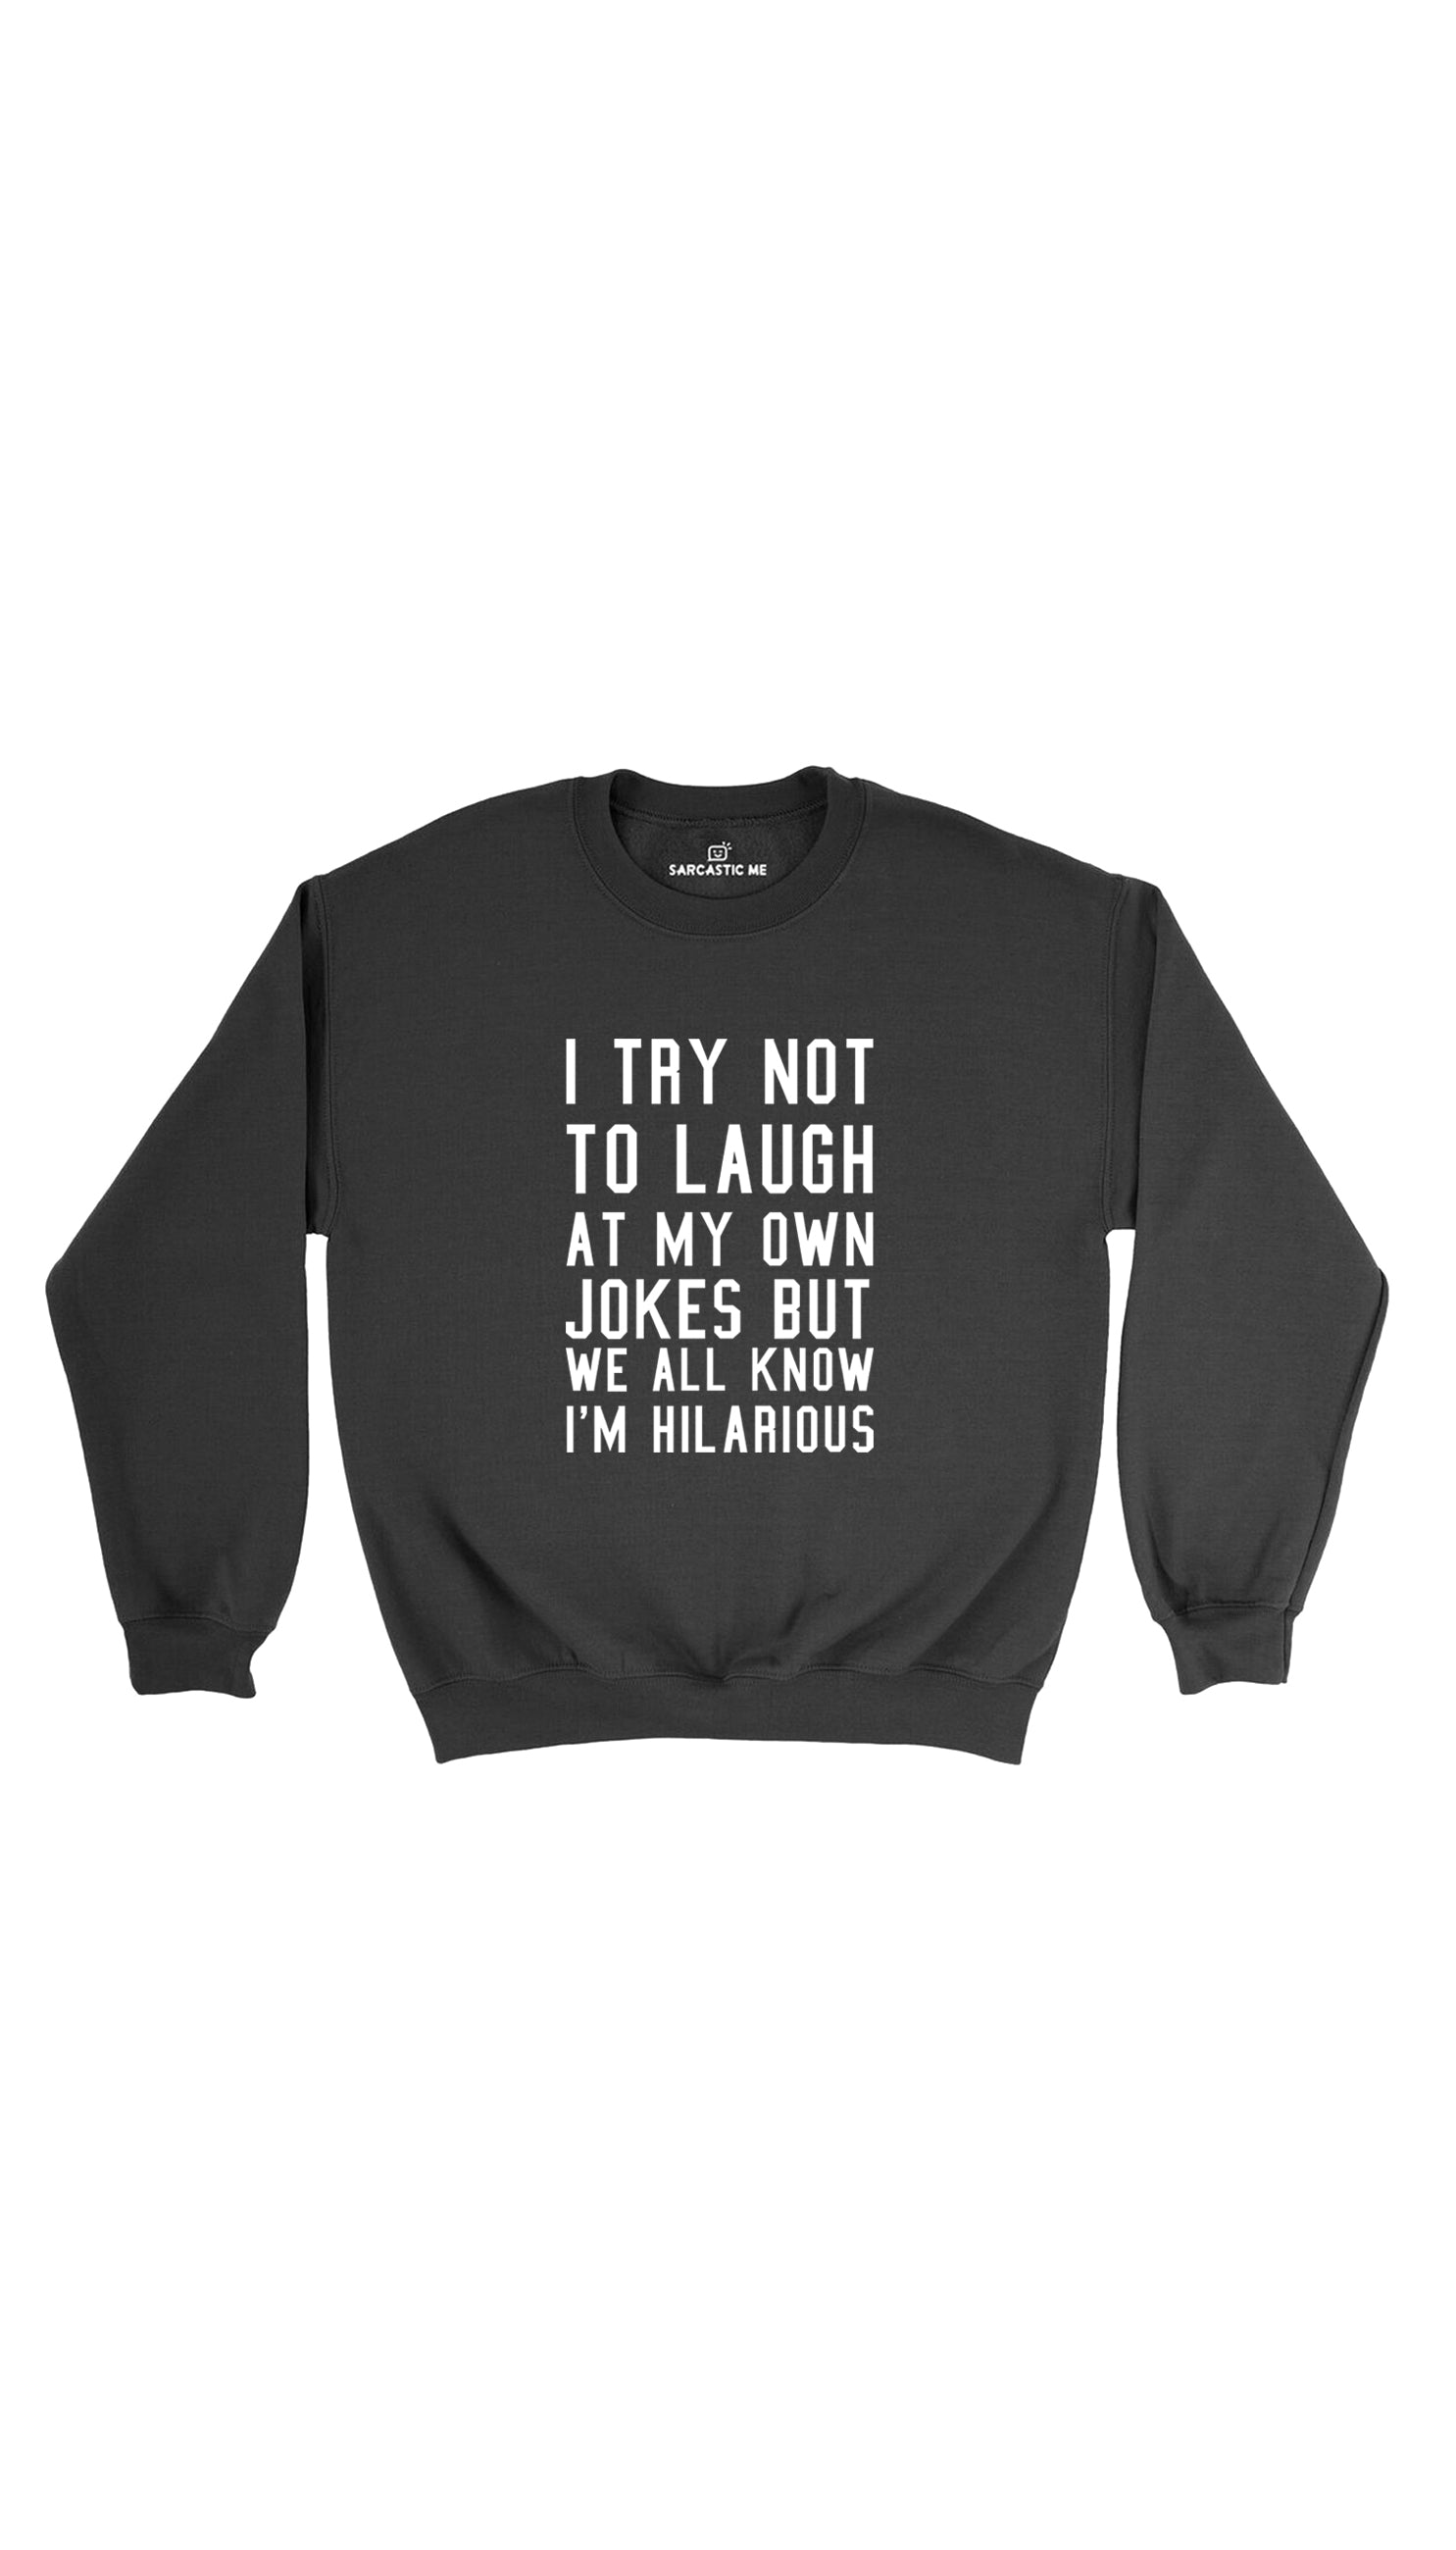 I Try Not To Laugh At My Own Jokes Black Unisex Sweatshirt | Sarcastic Me